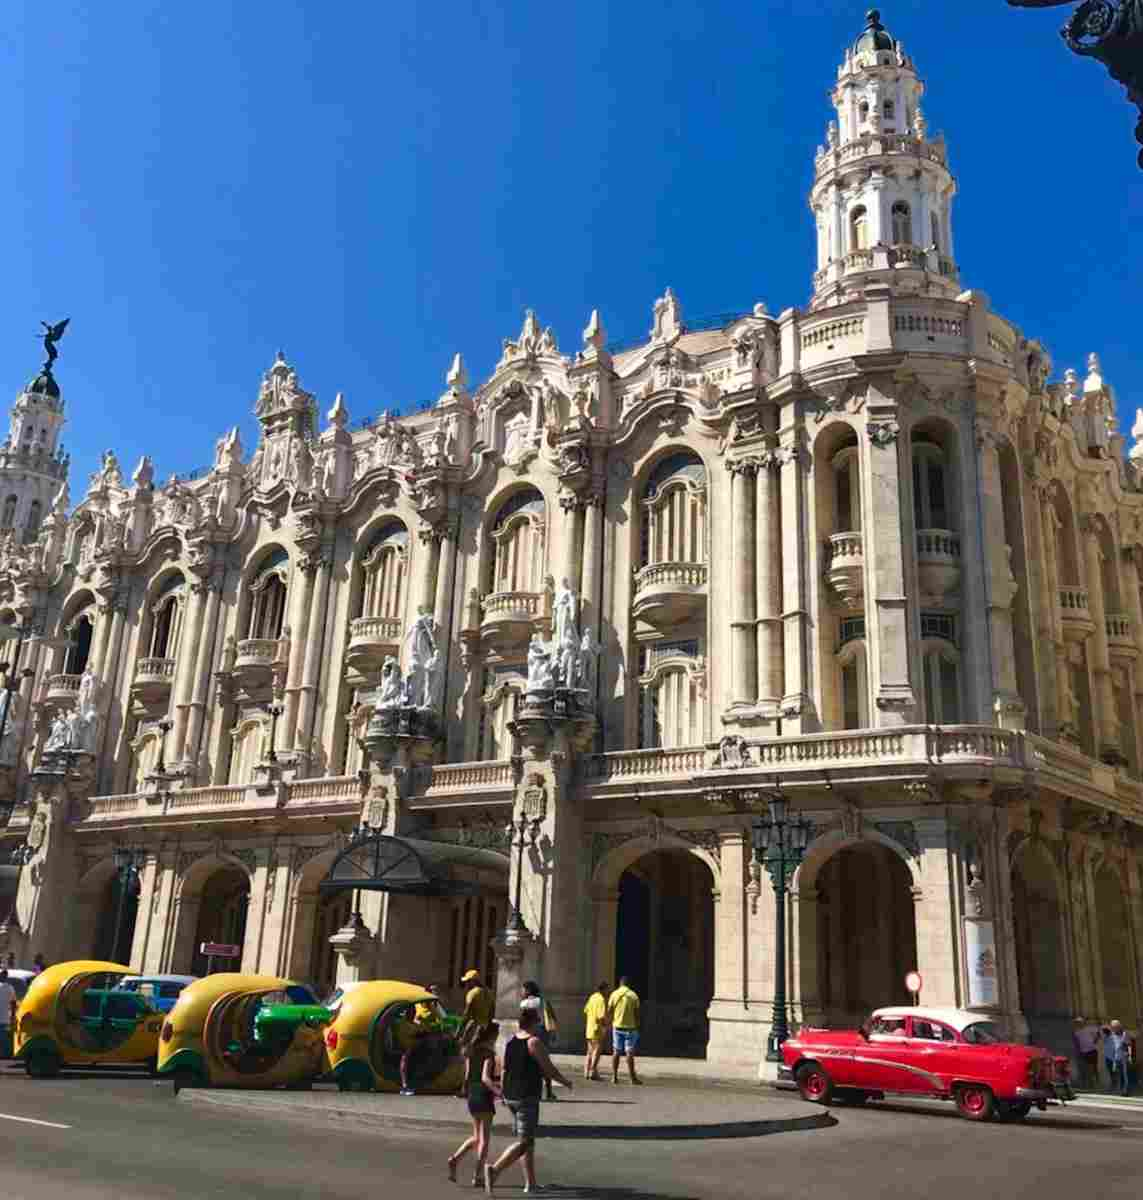 Spanish Colonial architecture can widely be found in Cuba, like here in the capital Havana.